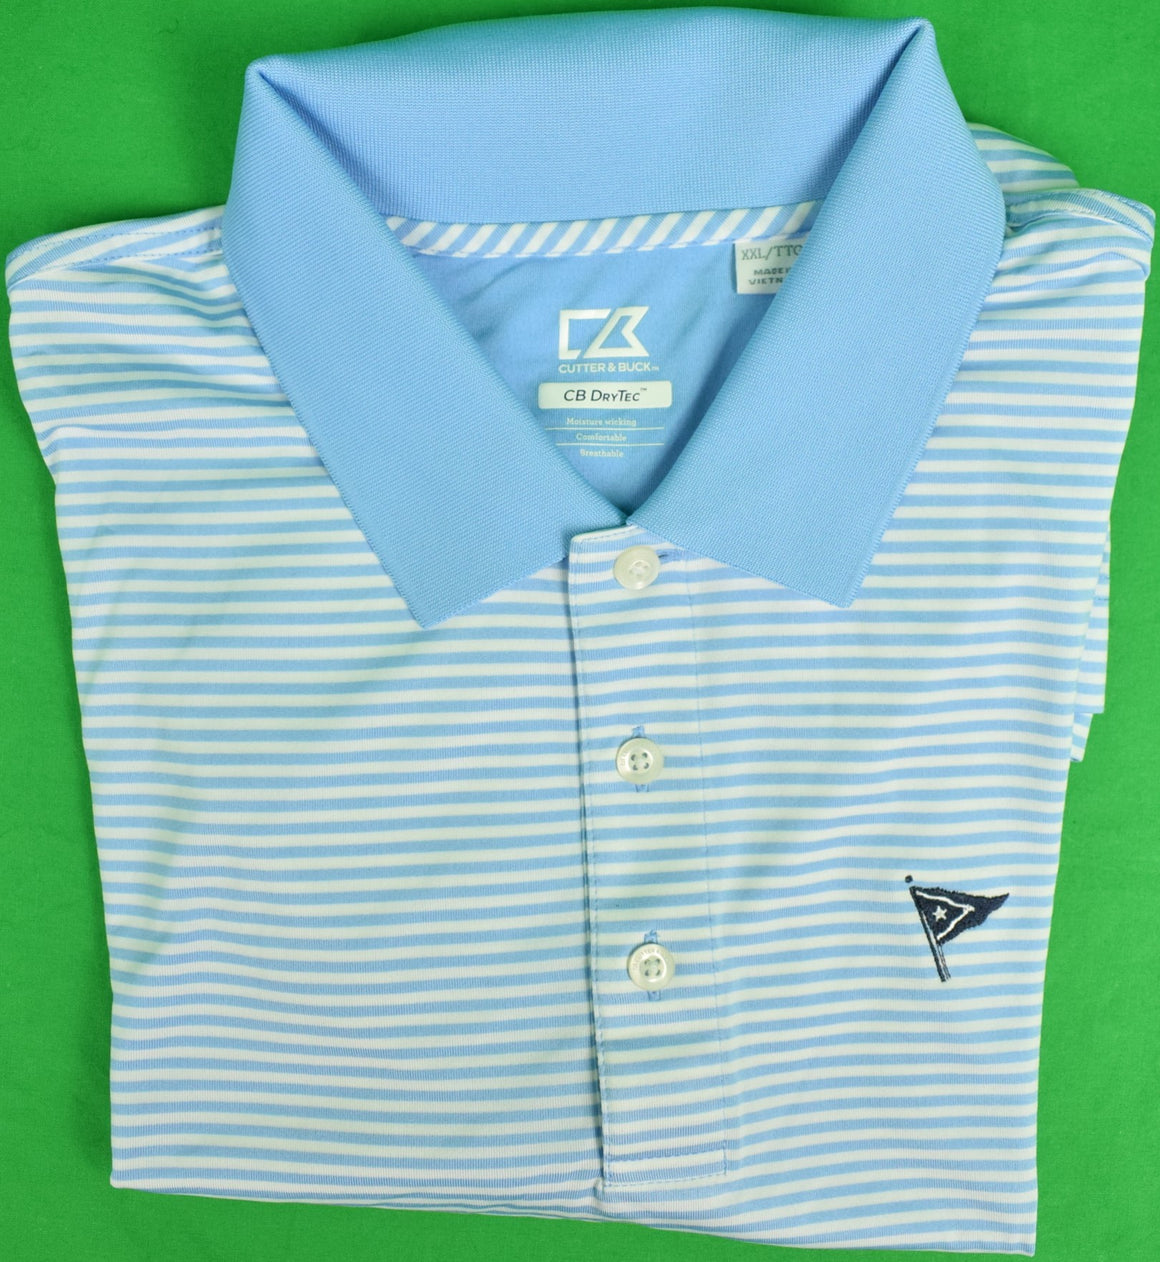 Cutter & Buck Blue/White Stripe Polo S/S Shirt w/ Nantucket Yacht Club Logo Sz: XXL (SOLD)